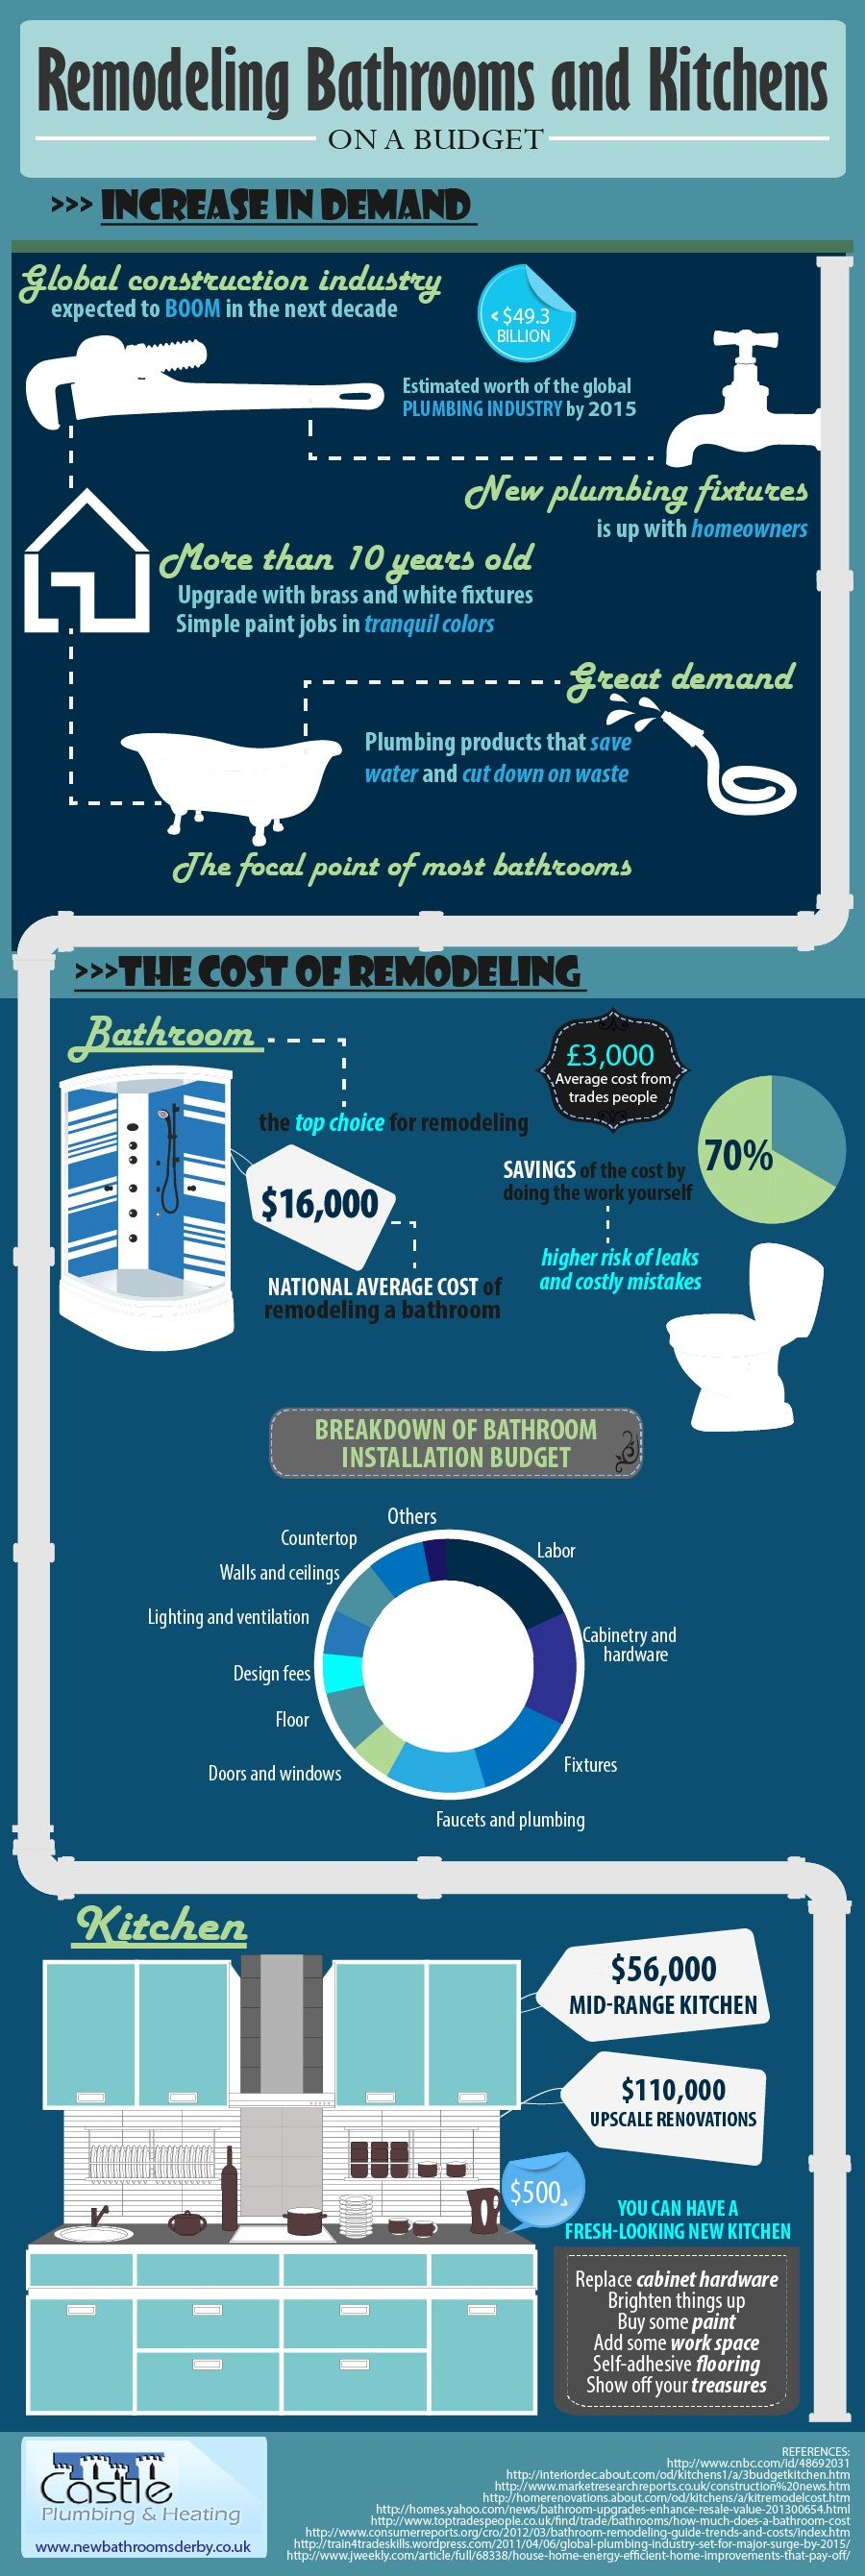 2191 infographic Remodeling Bathrooms and Kitchens on a Budget ...